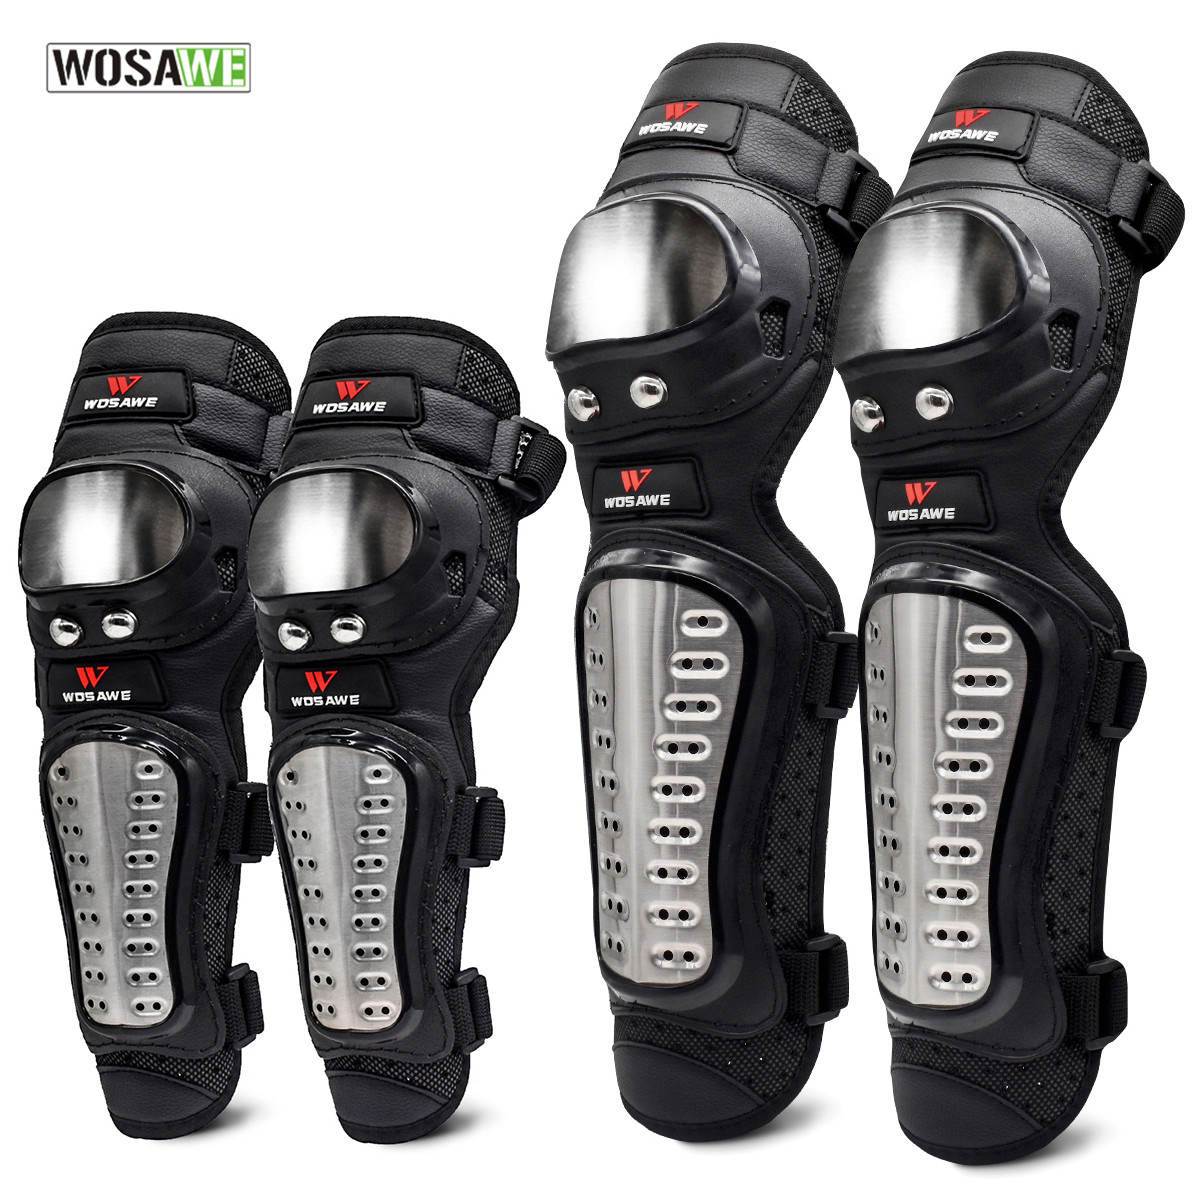 WOSAWE 4Pcs/Set  Elbow & Knee Pads Stainless Steel Motorcycle Motocross Protective Gear Protector Guards Sports Armor KitWOSAWE 4Pcs/Set  Elbow & Knee Pads Stainless Steel Motorcycle Motocross Protective Gear Protector Guards Sports Armor Kit